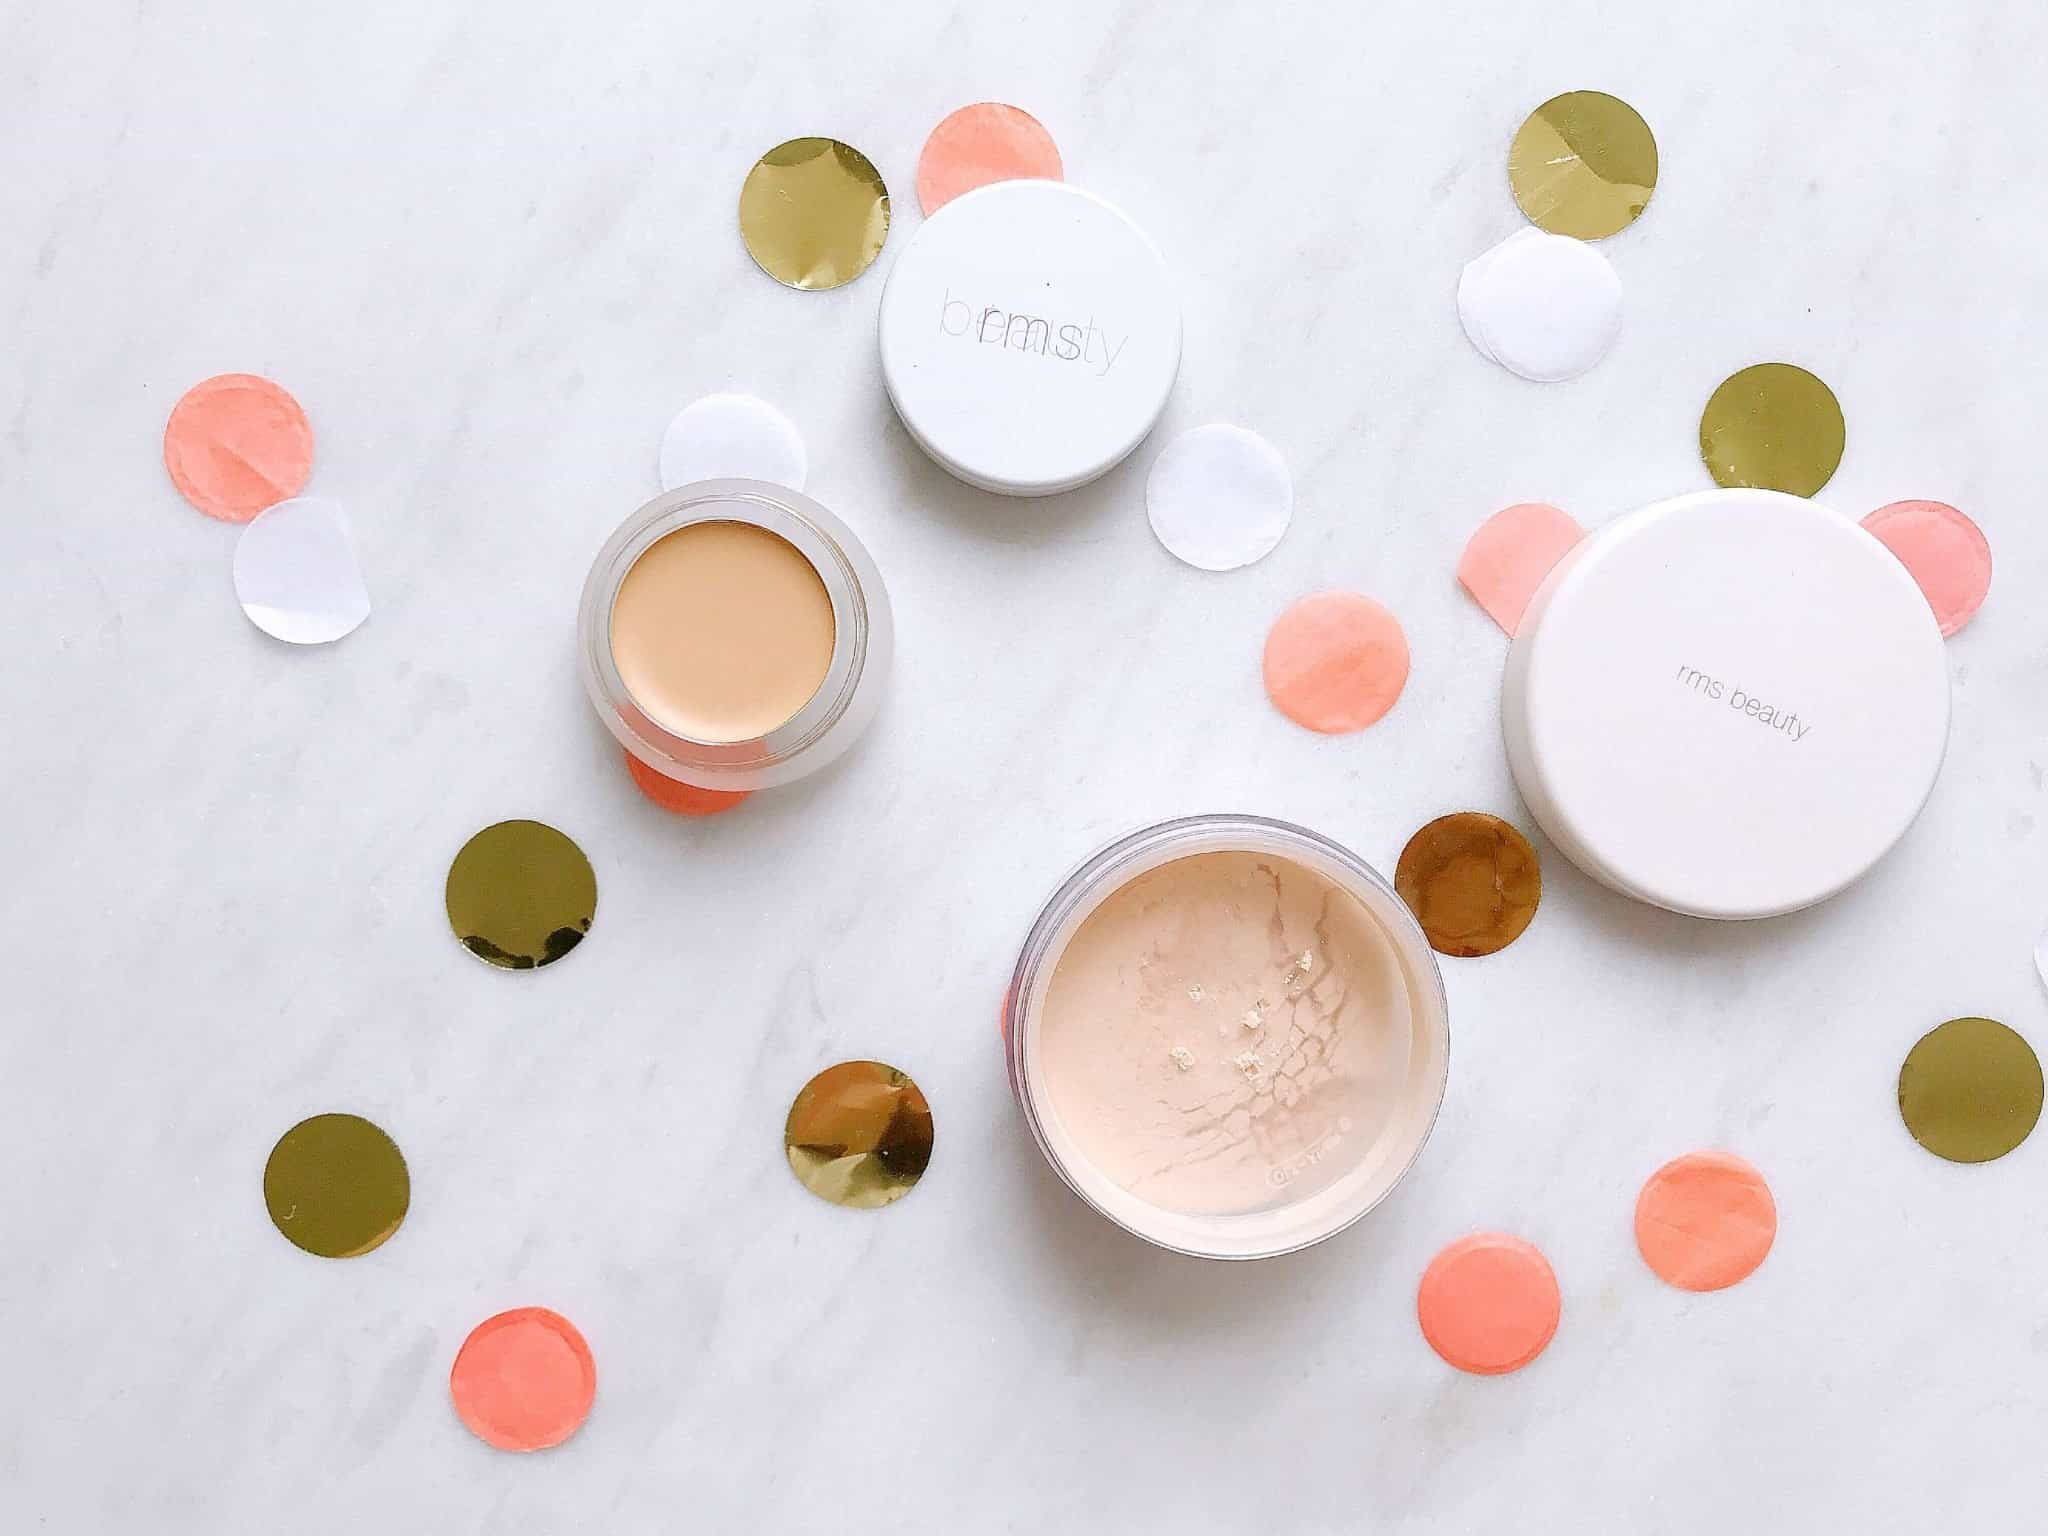 RMS Beauty 'Un' Cover-up Concealer and tinted 'Un' Powder Review